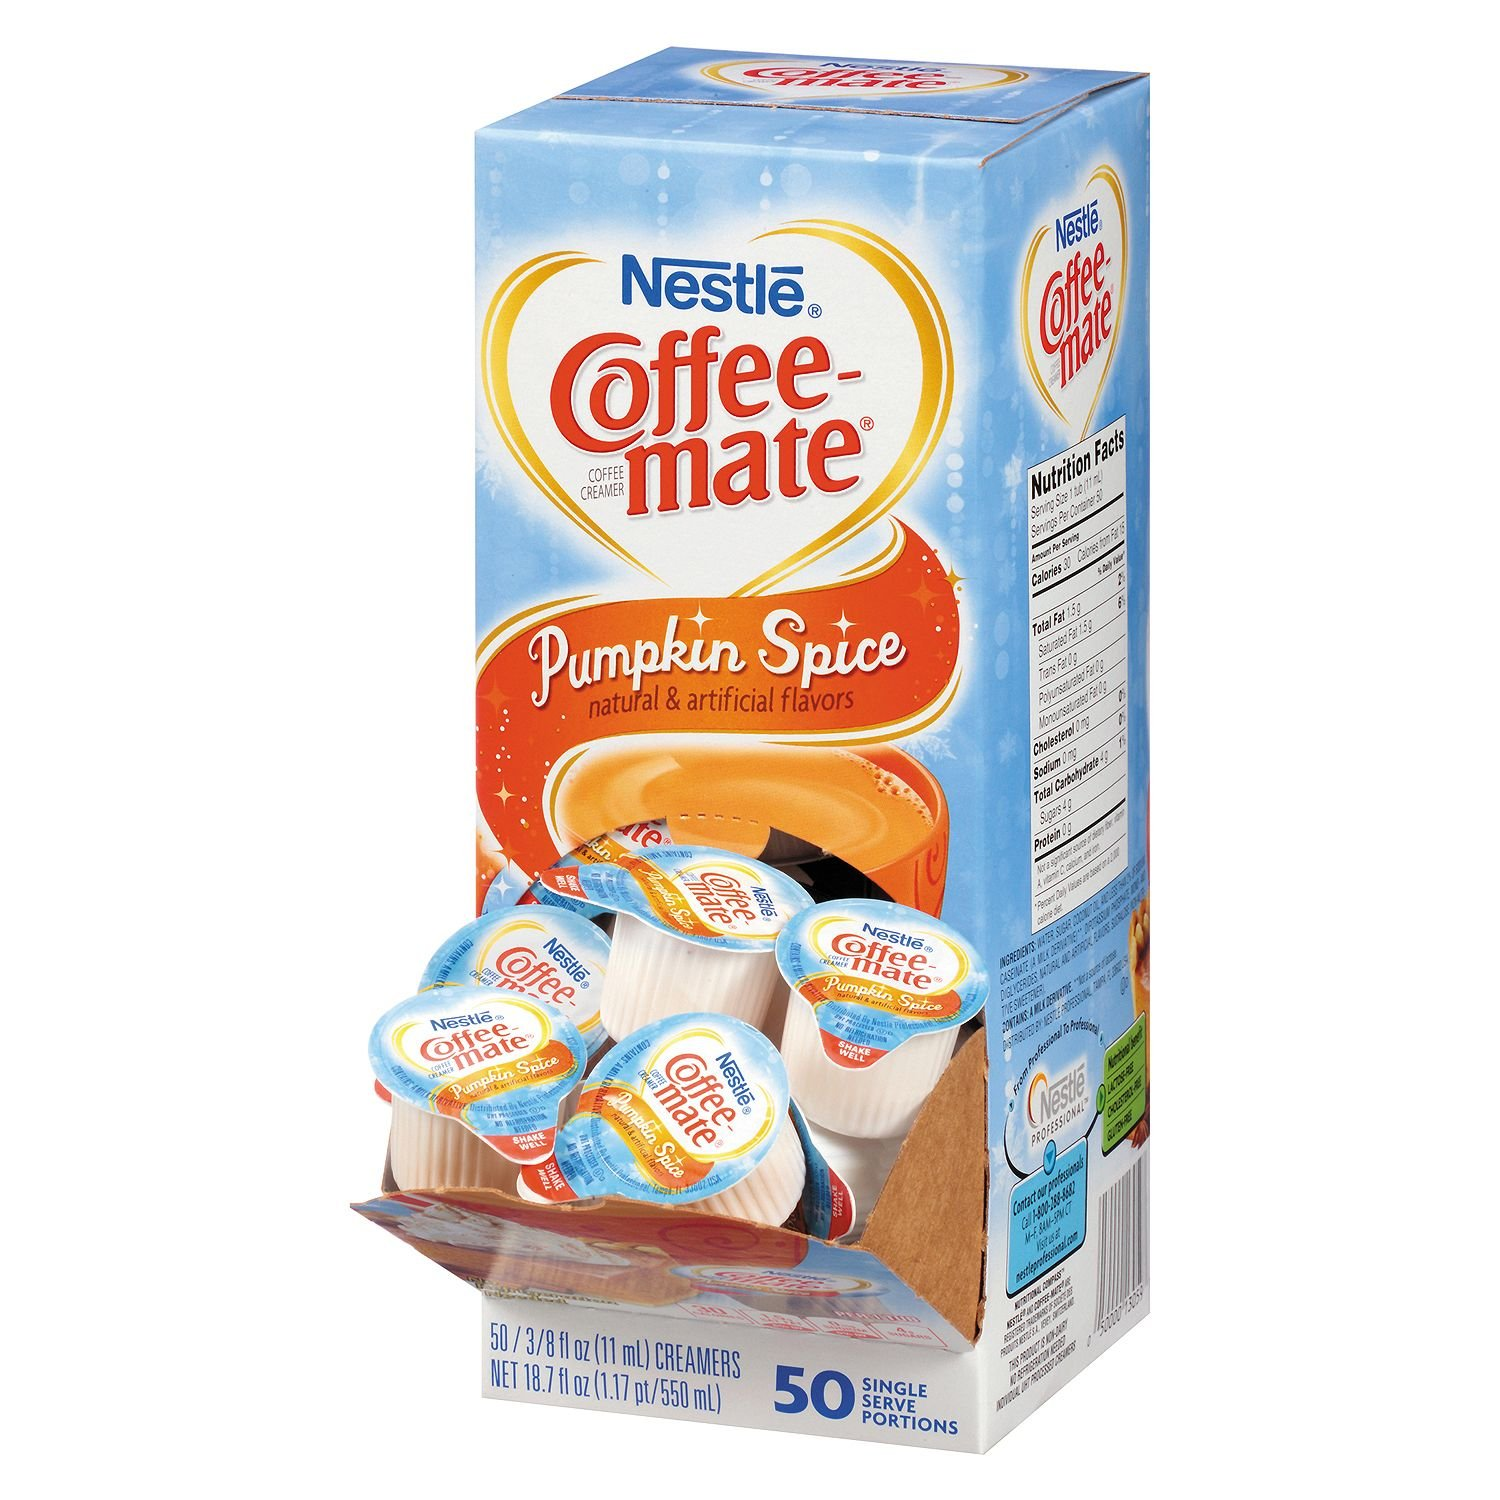 Nestle Coffee-Mate Pumpkin Spice Liquid Creamer, 50 Count Single Serving Tubs (Pack of 3) by Coffee-mate